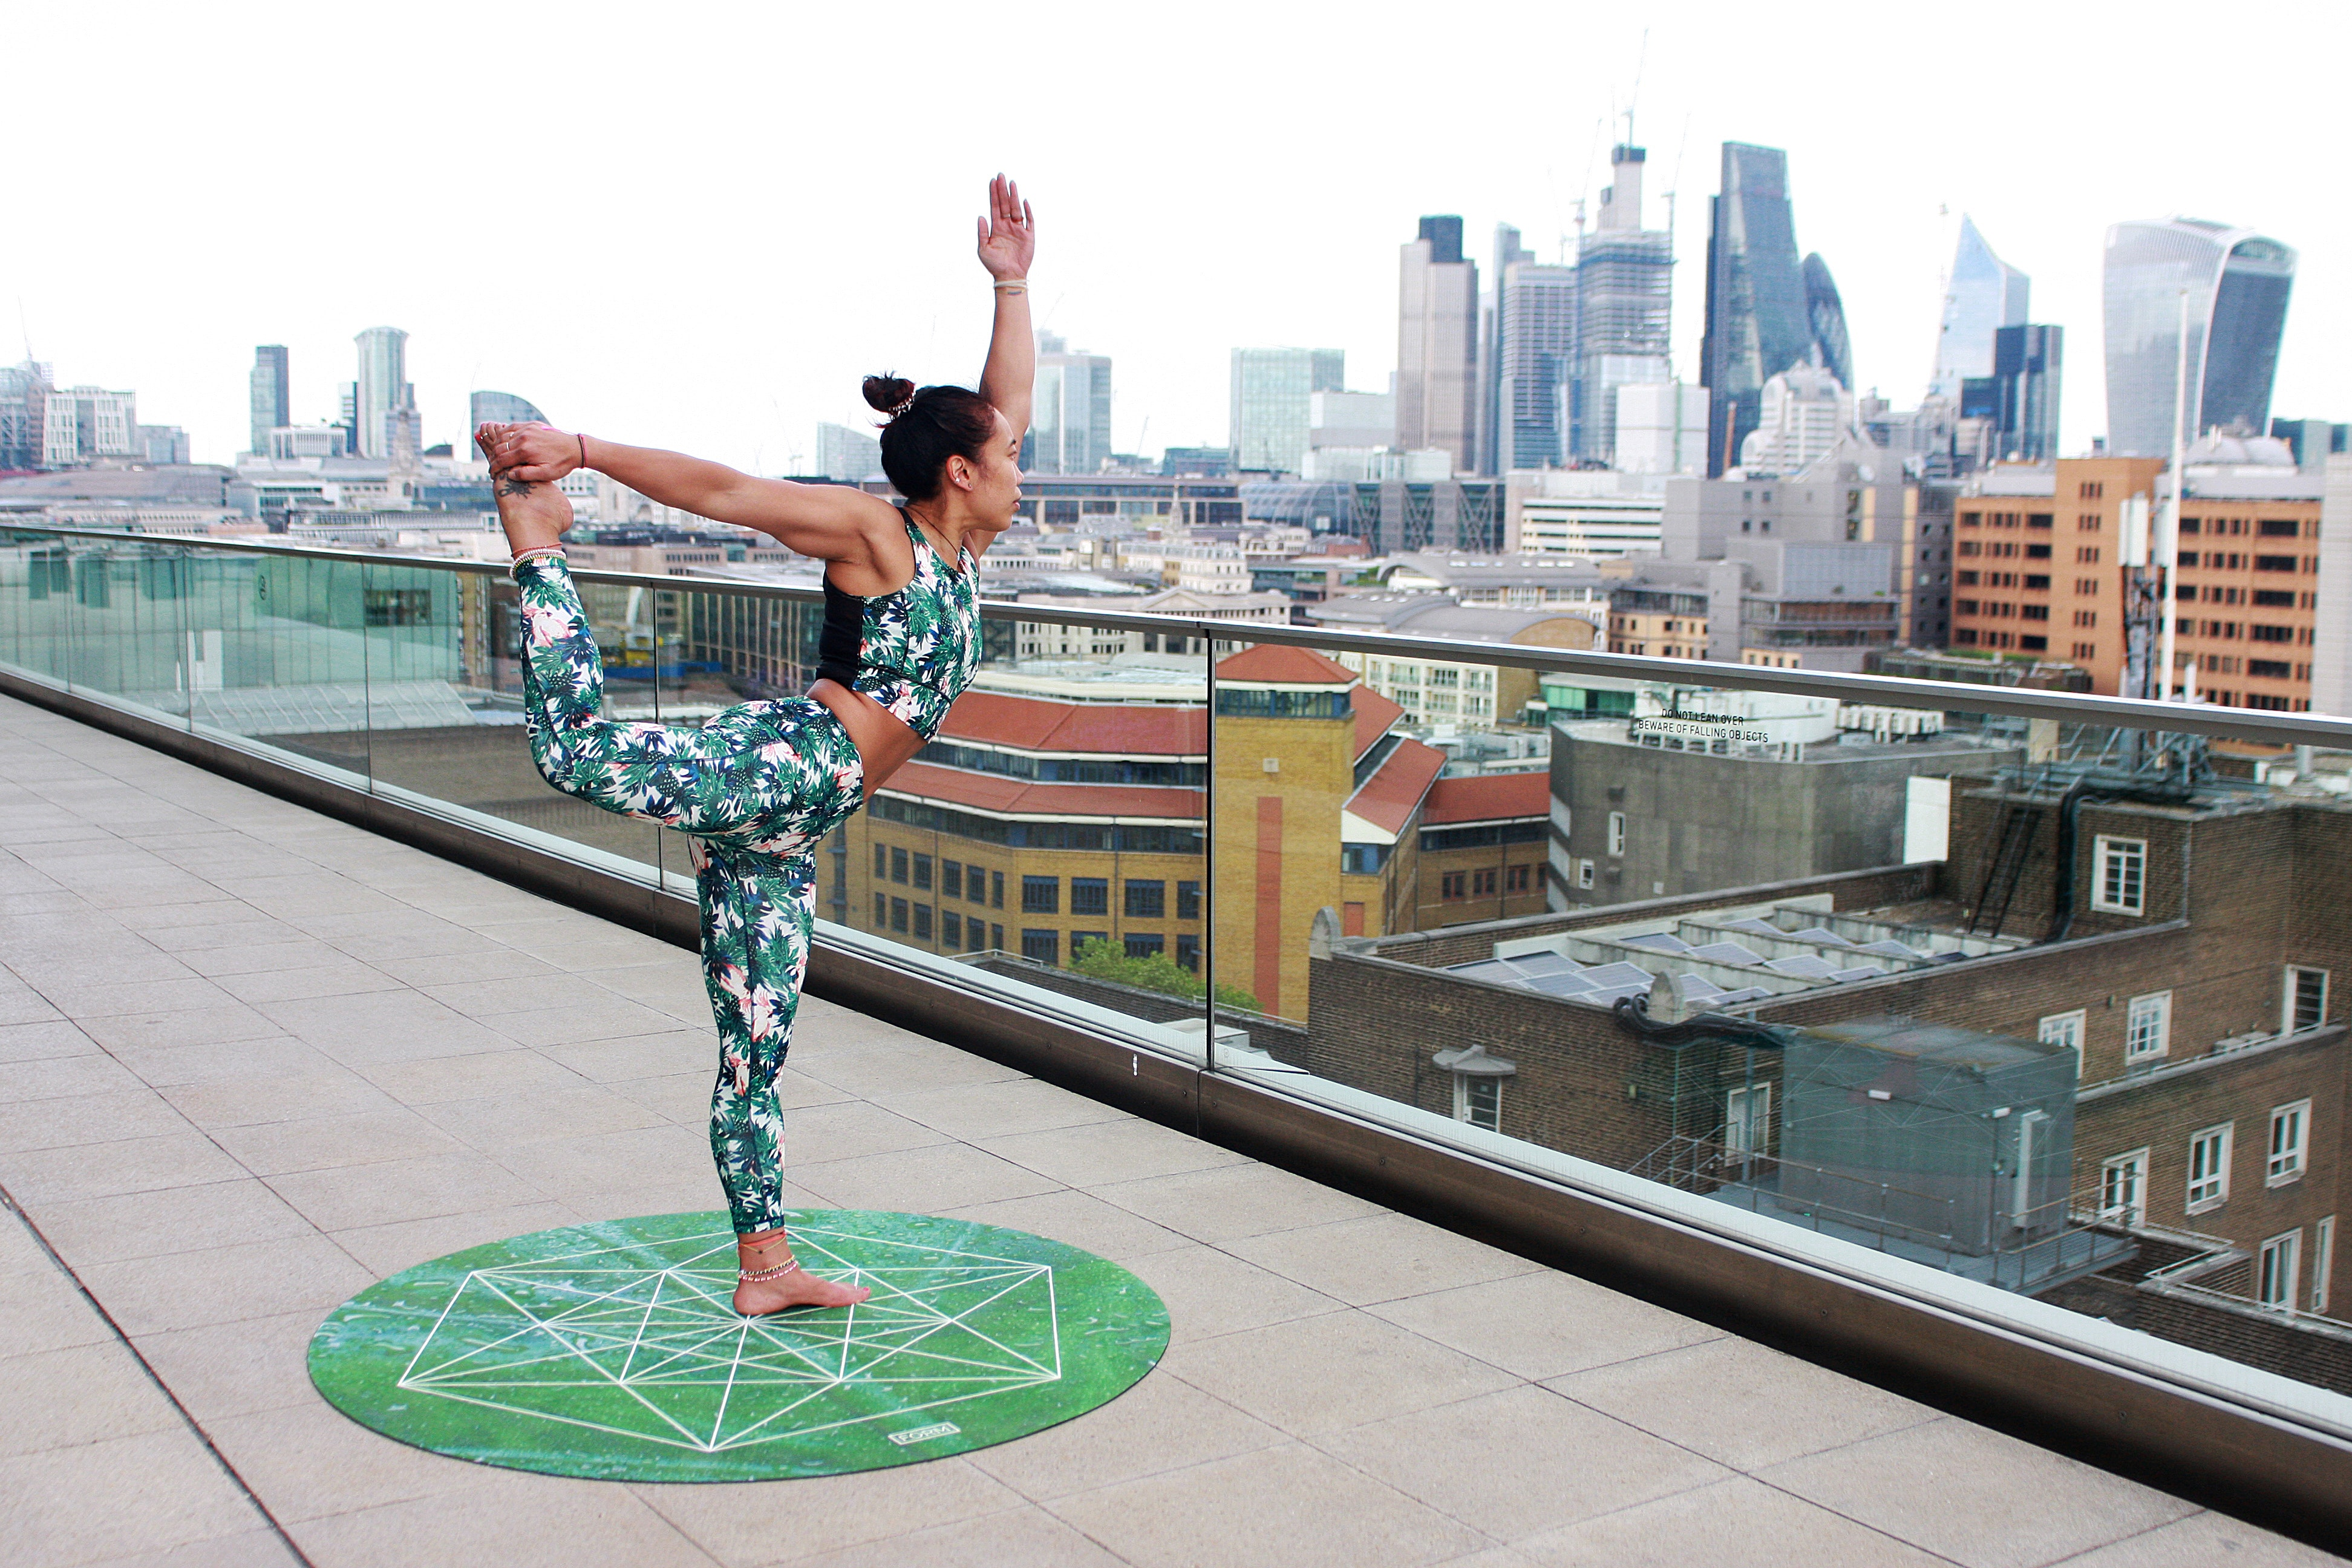 woman-on-round-green-yoga-mat-position-in-right-leg-high-and-1139483